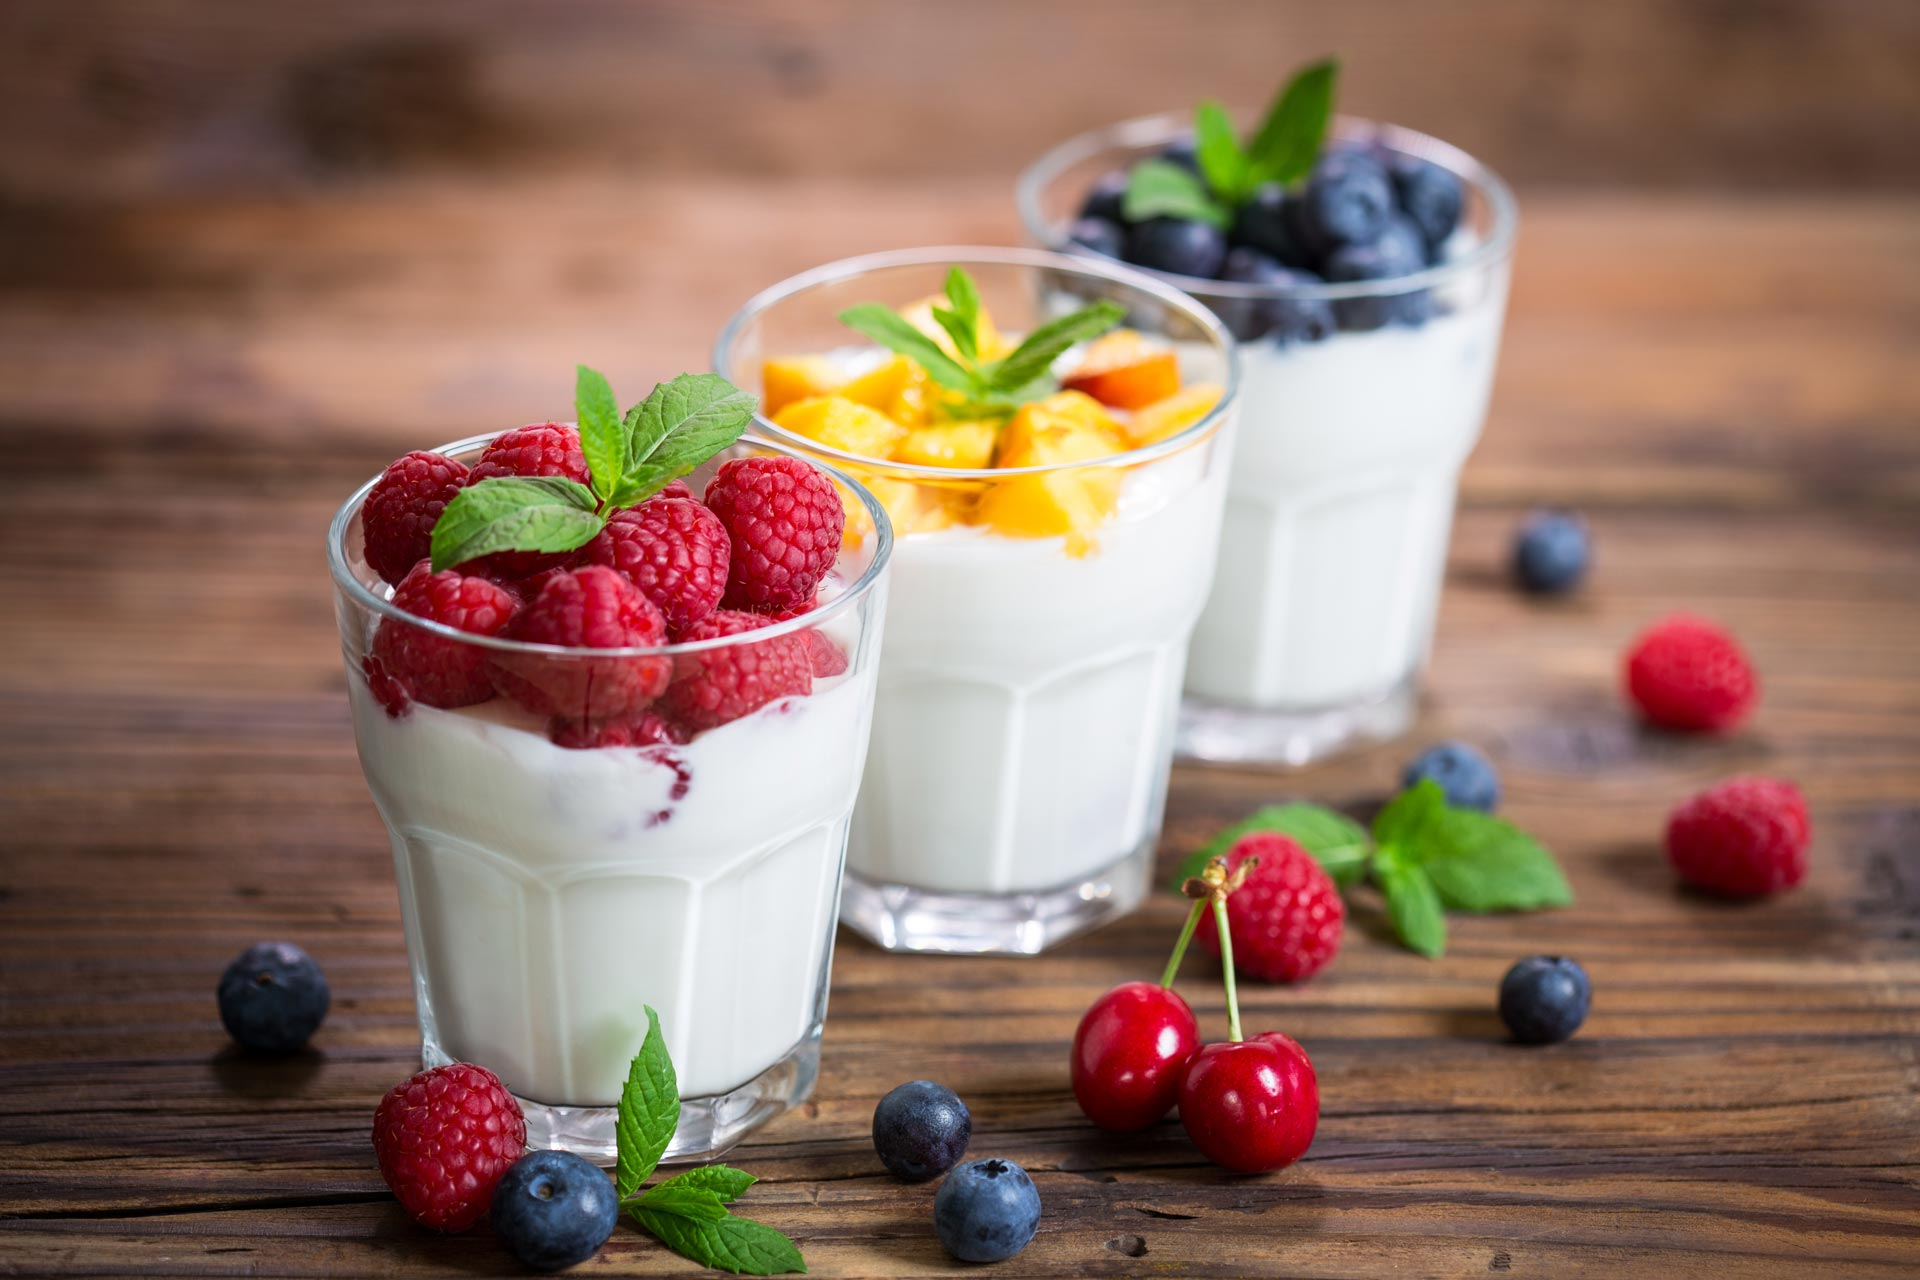 Yogurt with fruit in glass cups